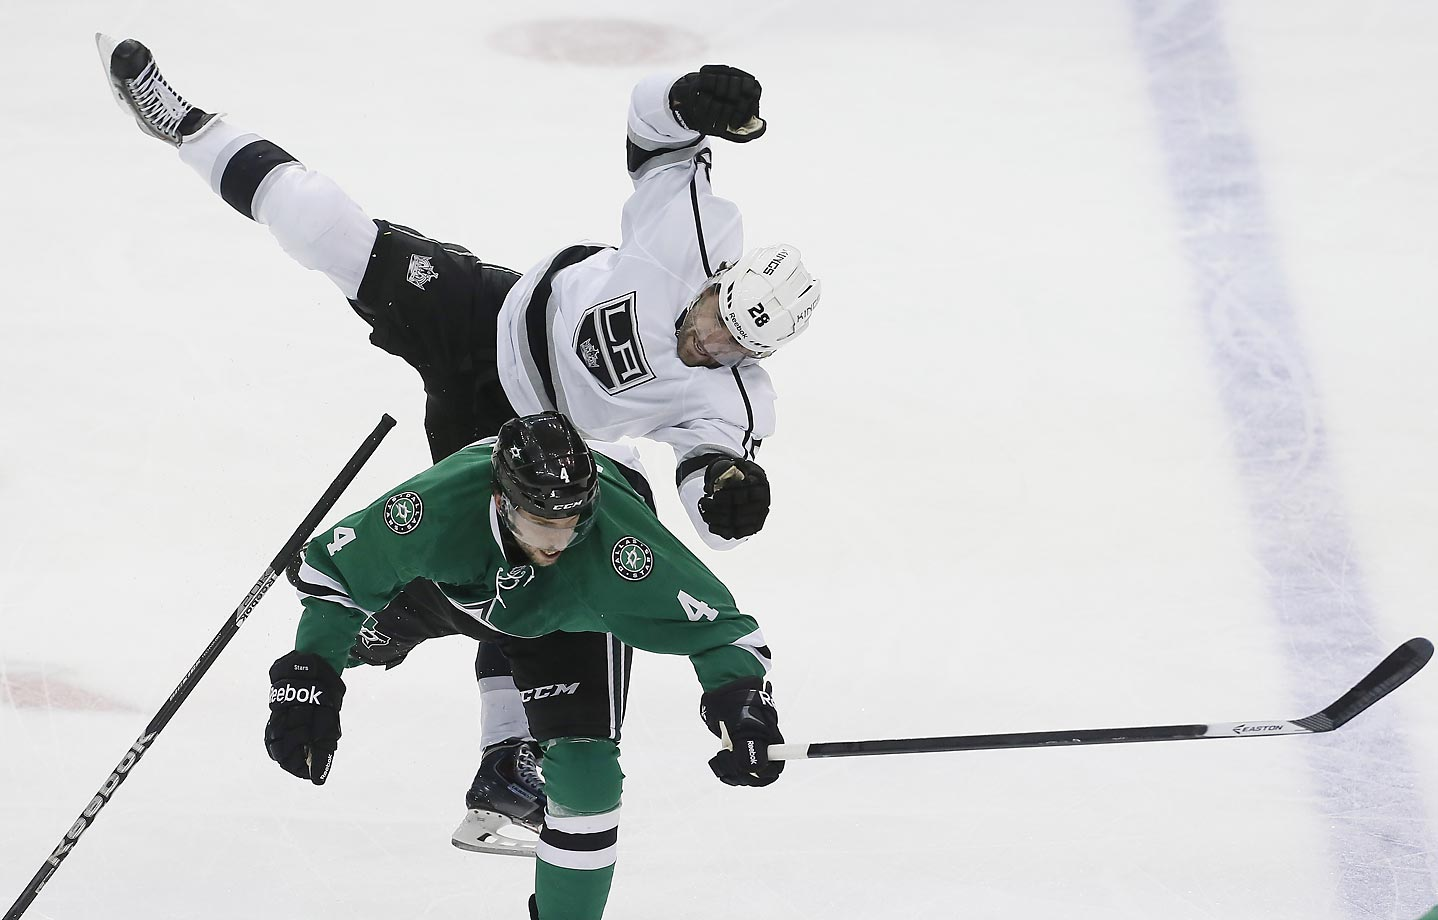 Dallas Stars Jason Demers checks Kings Jarret Stoll on Sunday.